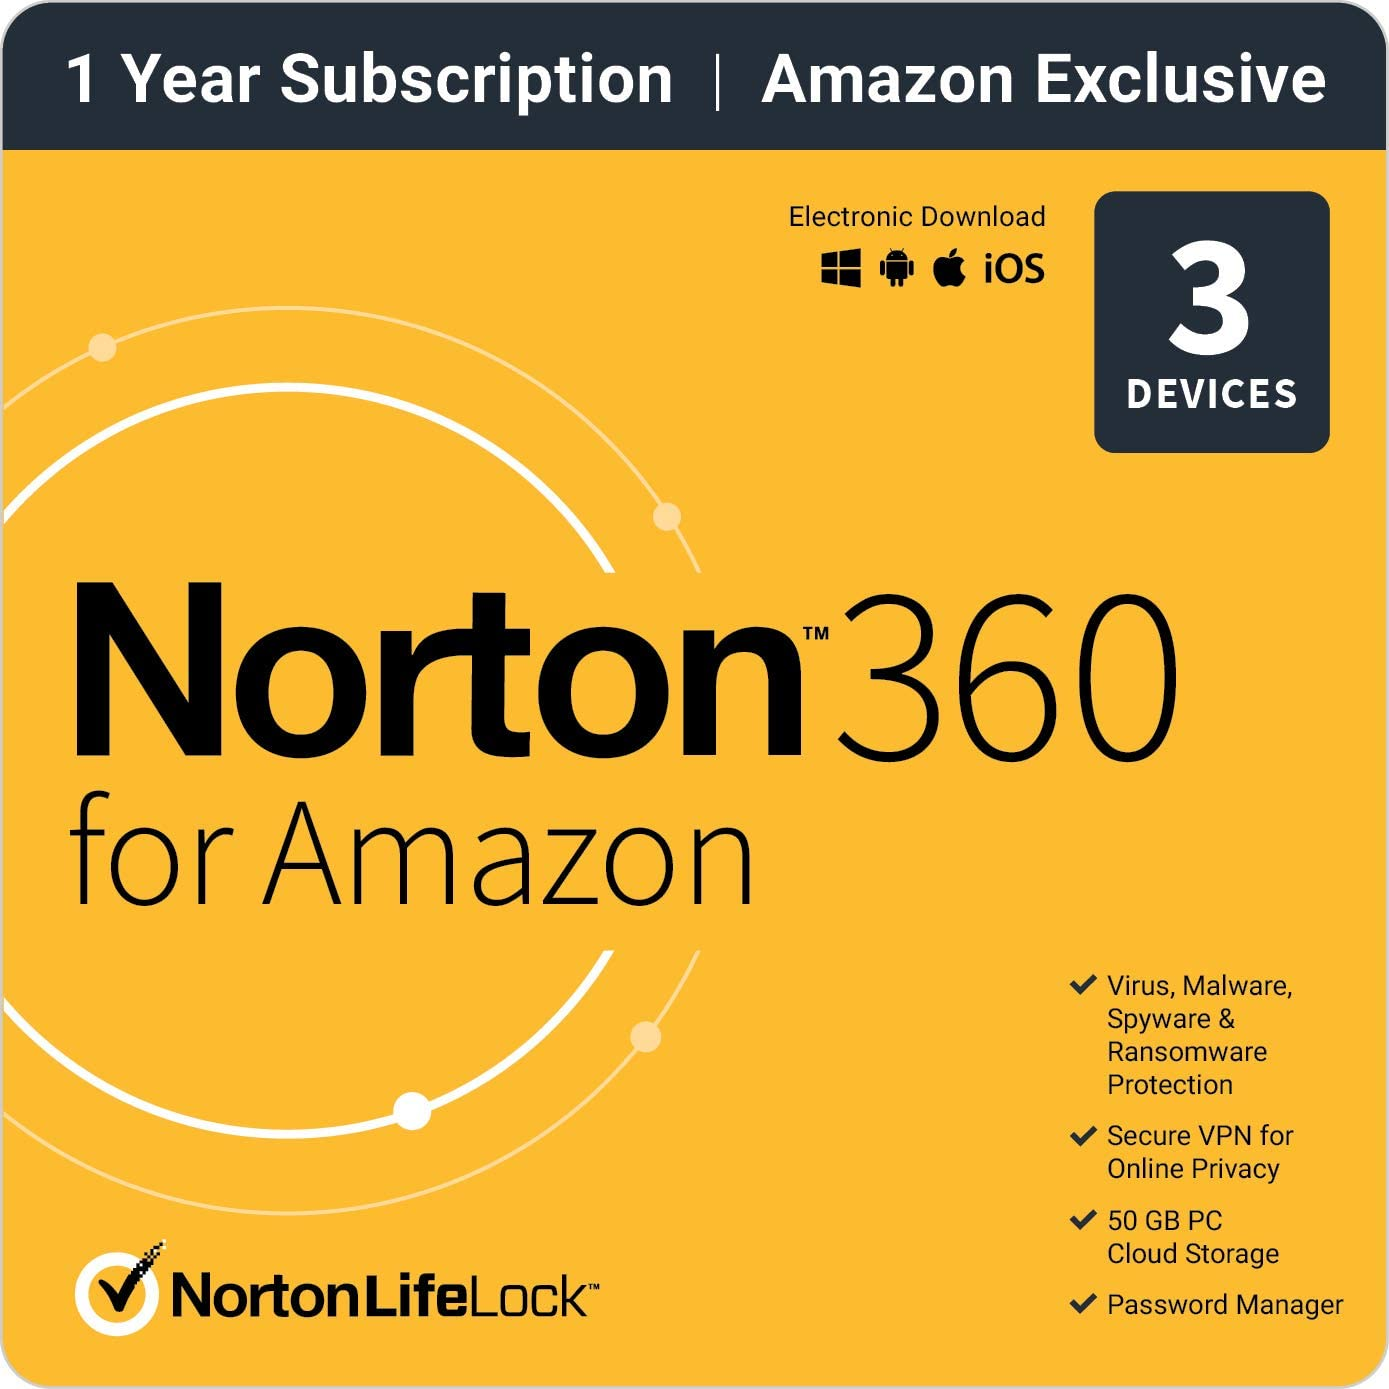 Norton 360 for Amazon – Antivirus software for up to 3 Devices with Auto Renewal